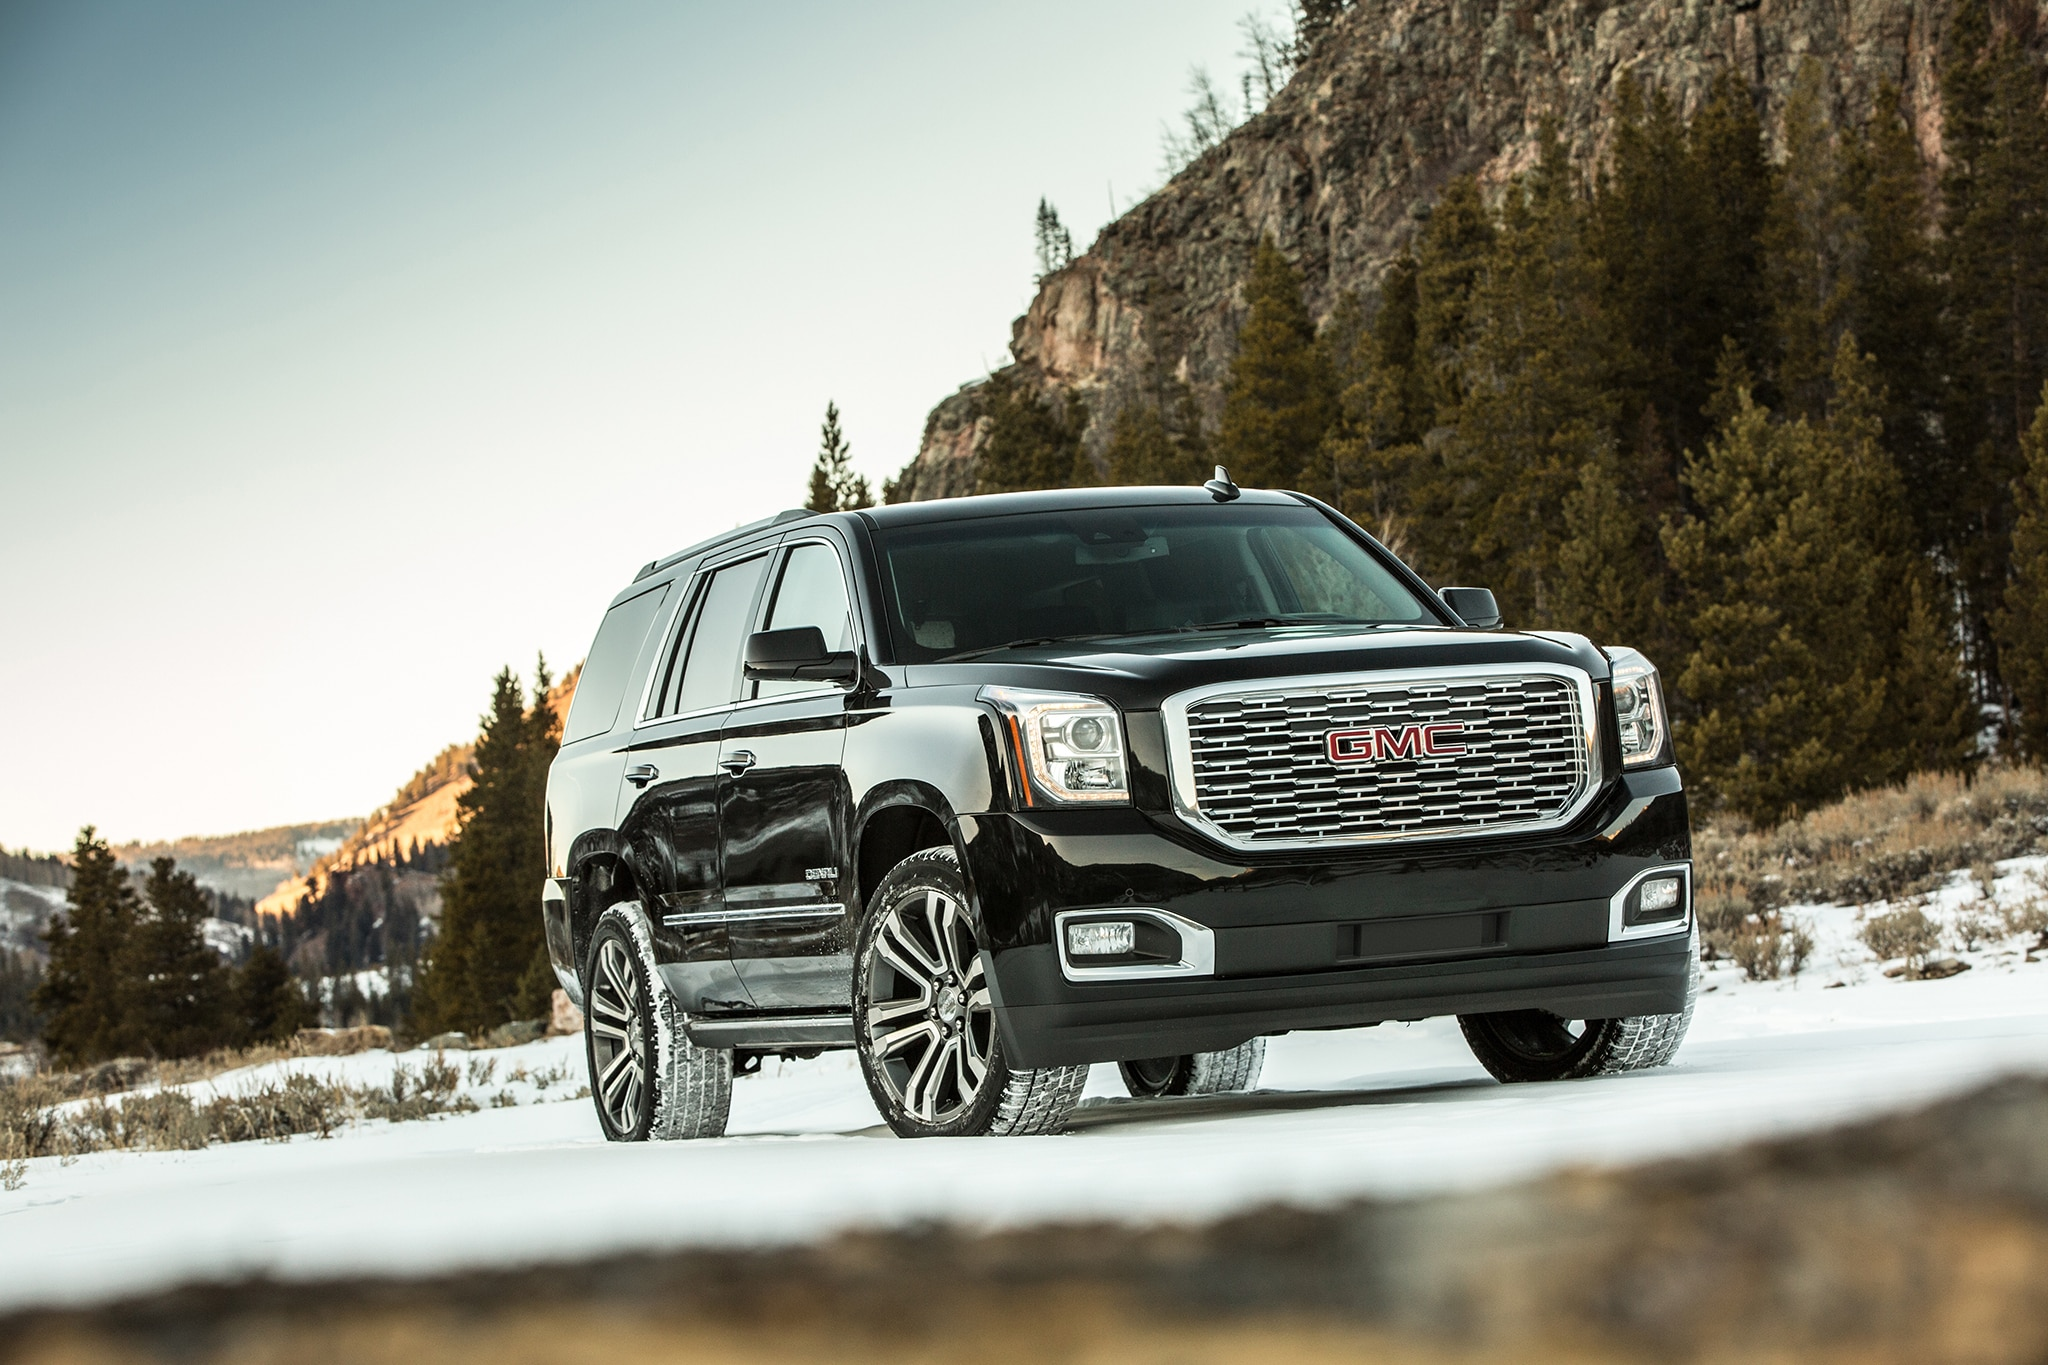 2018 Gmc Yukon Denali Ultimate Black Edition Casts Its Own